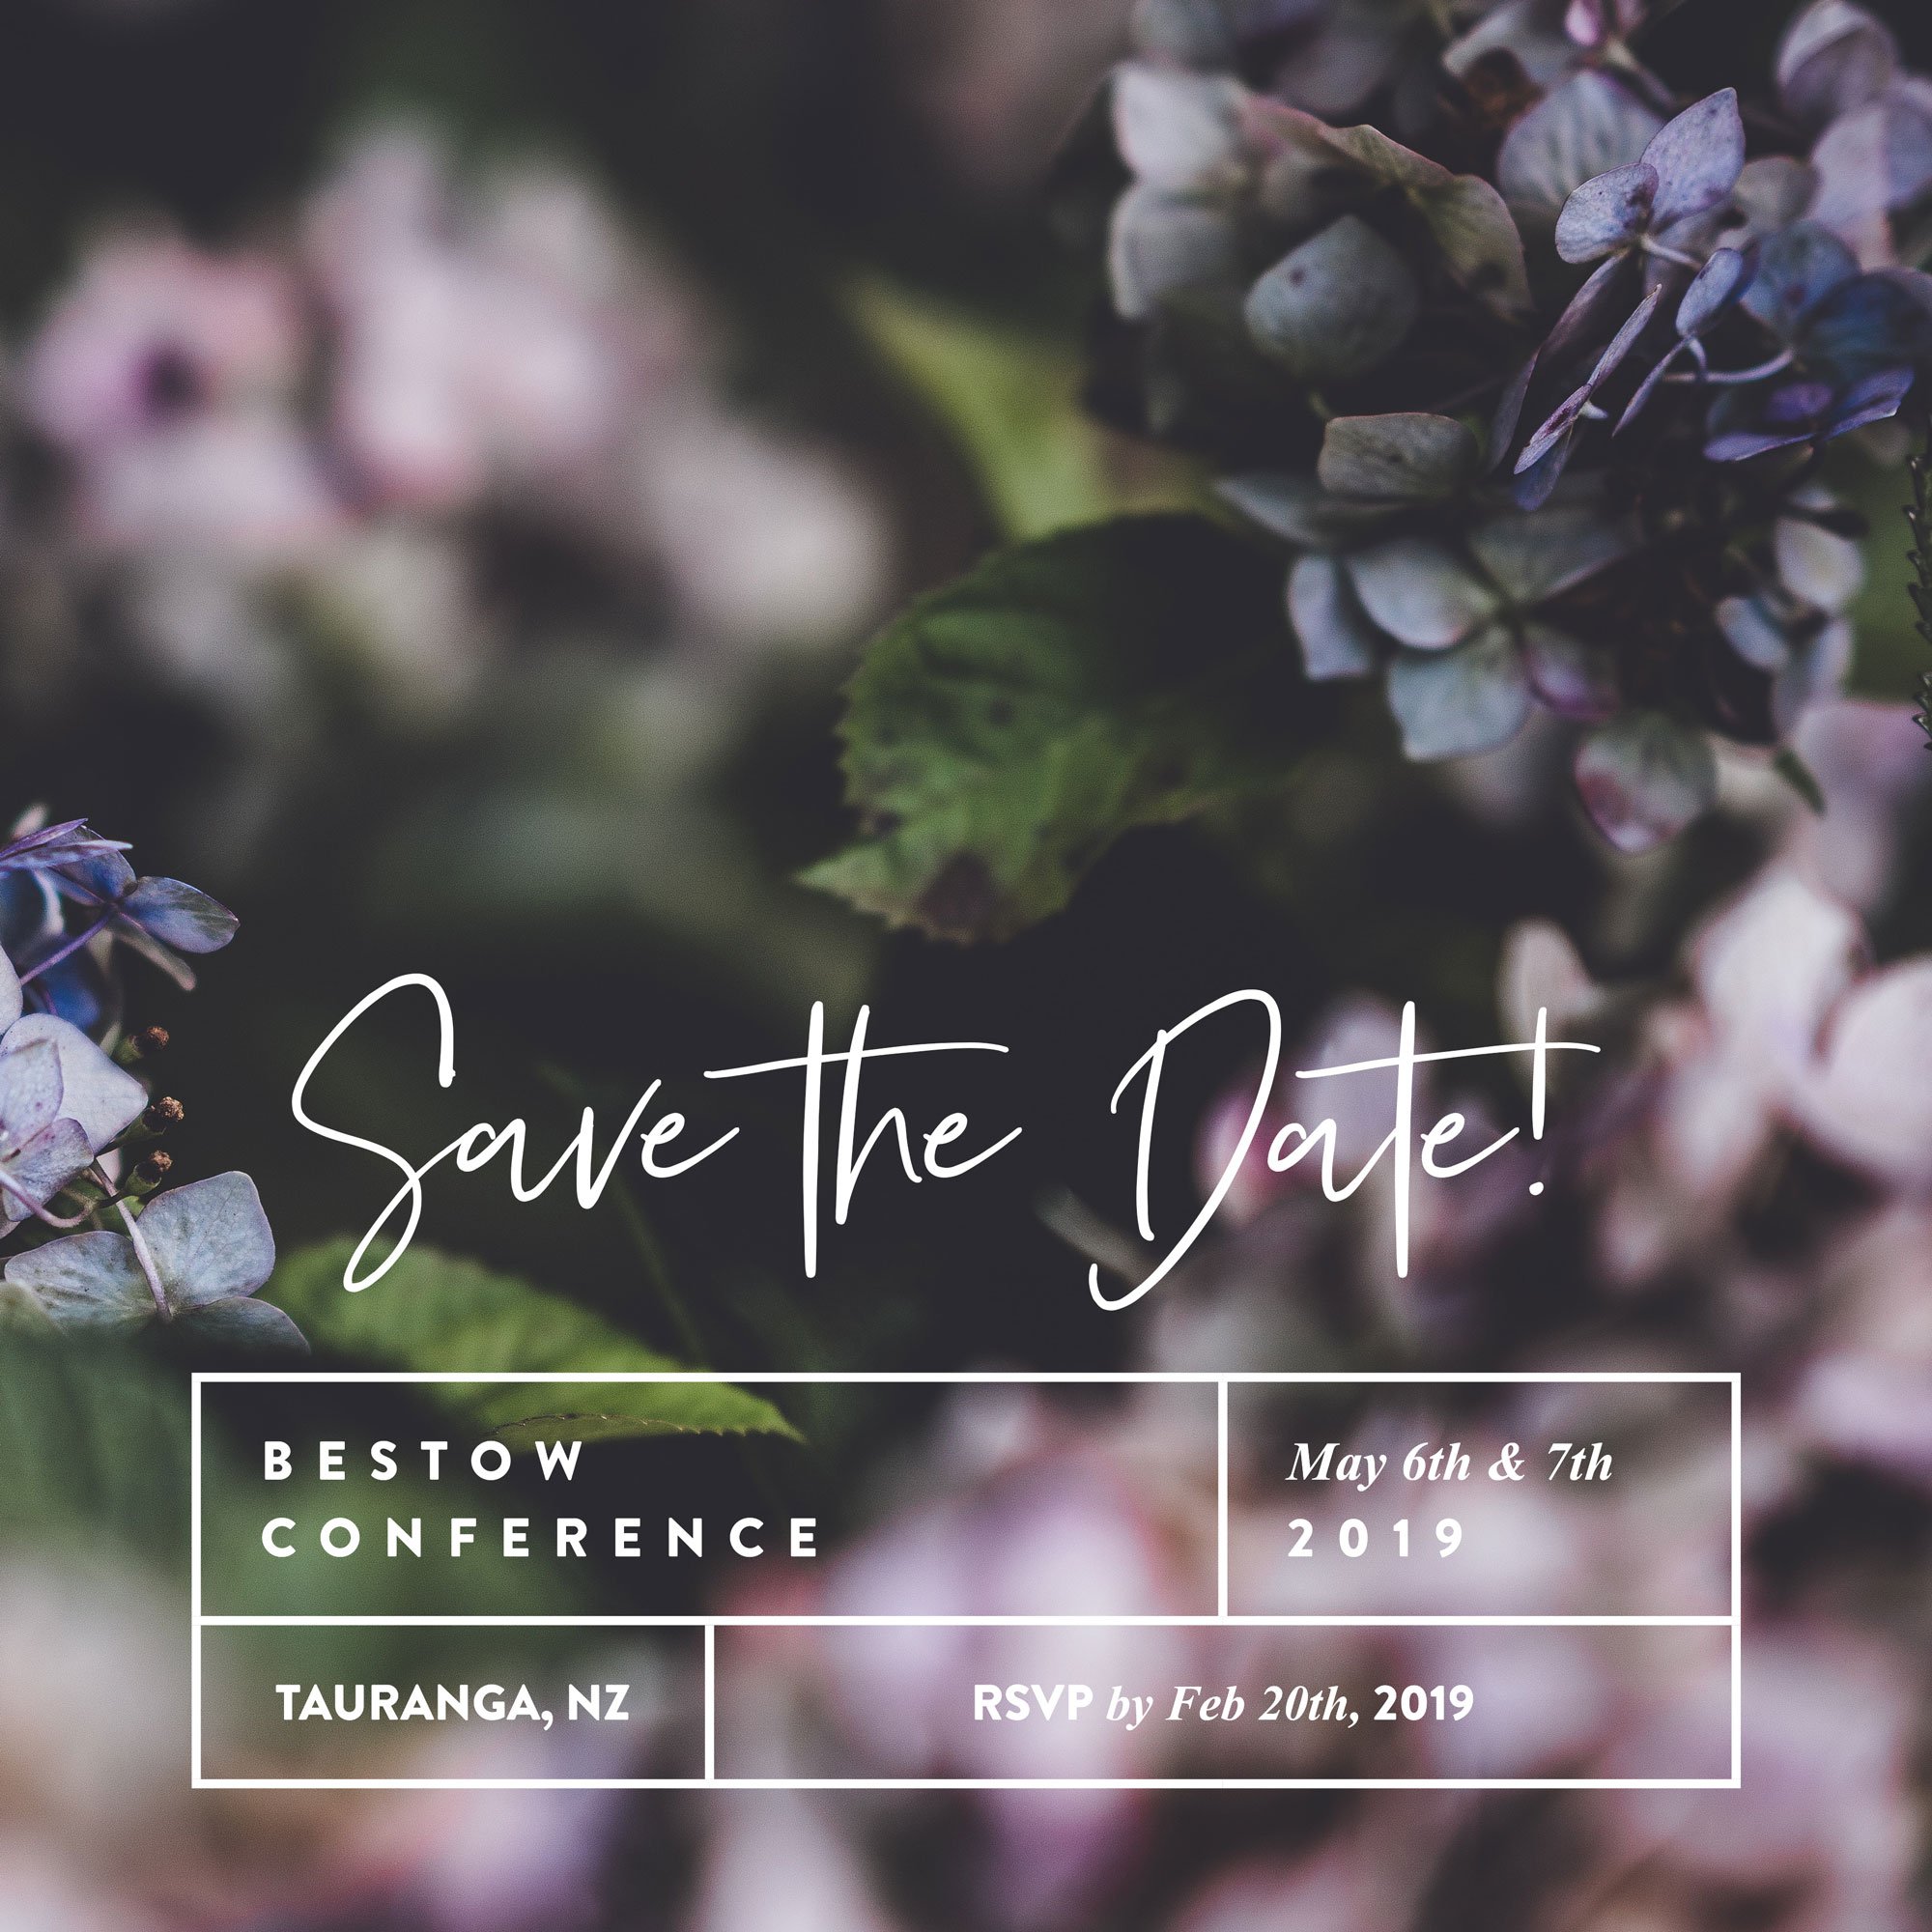 SAVE THE DATE! Bestow Conference 2019